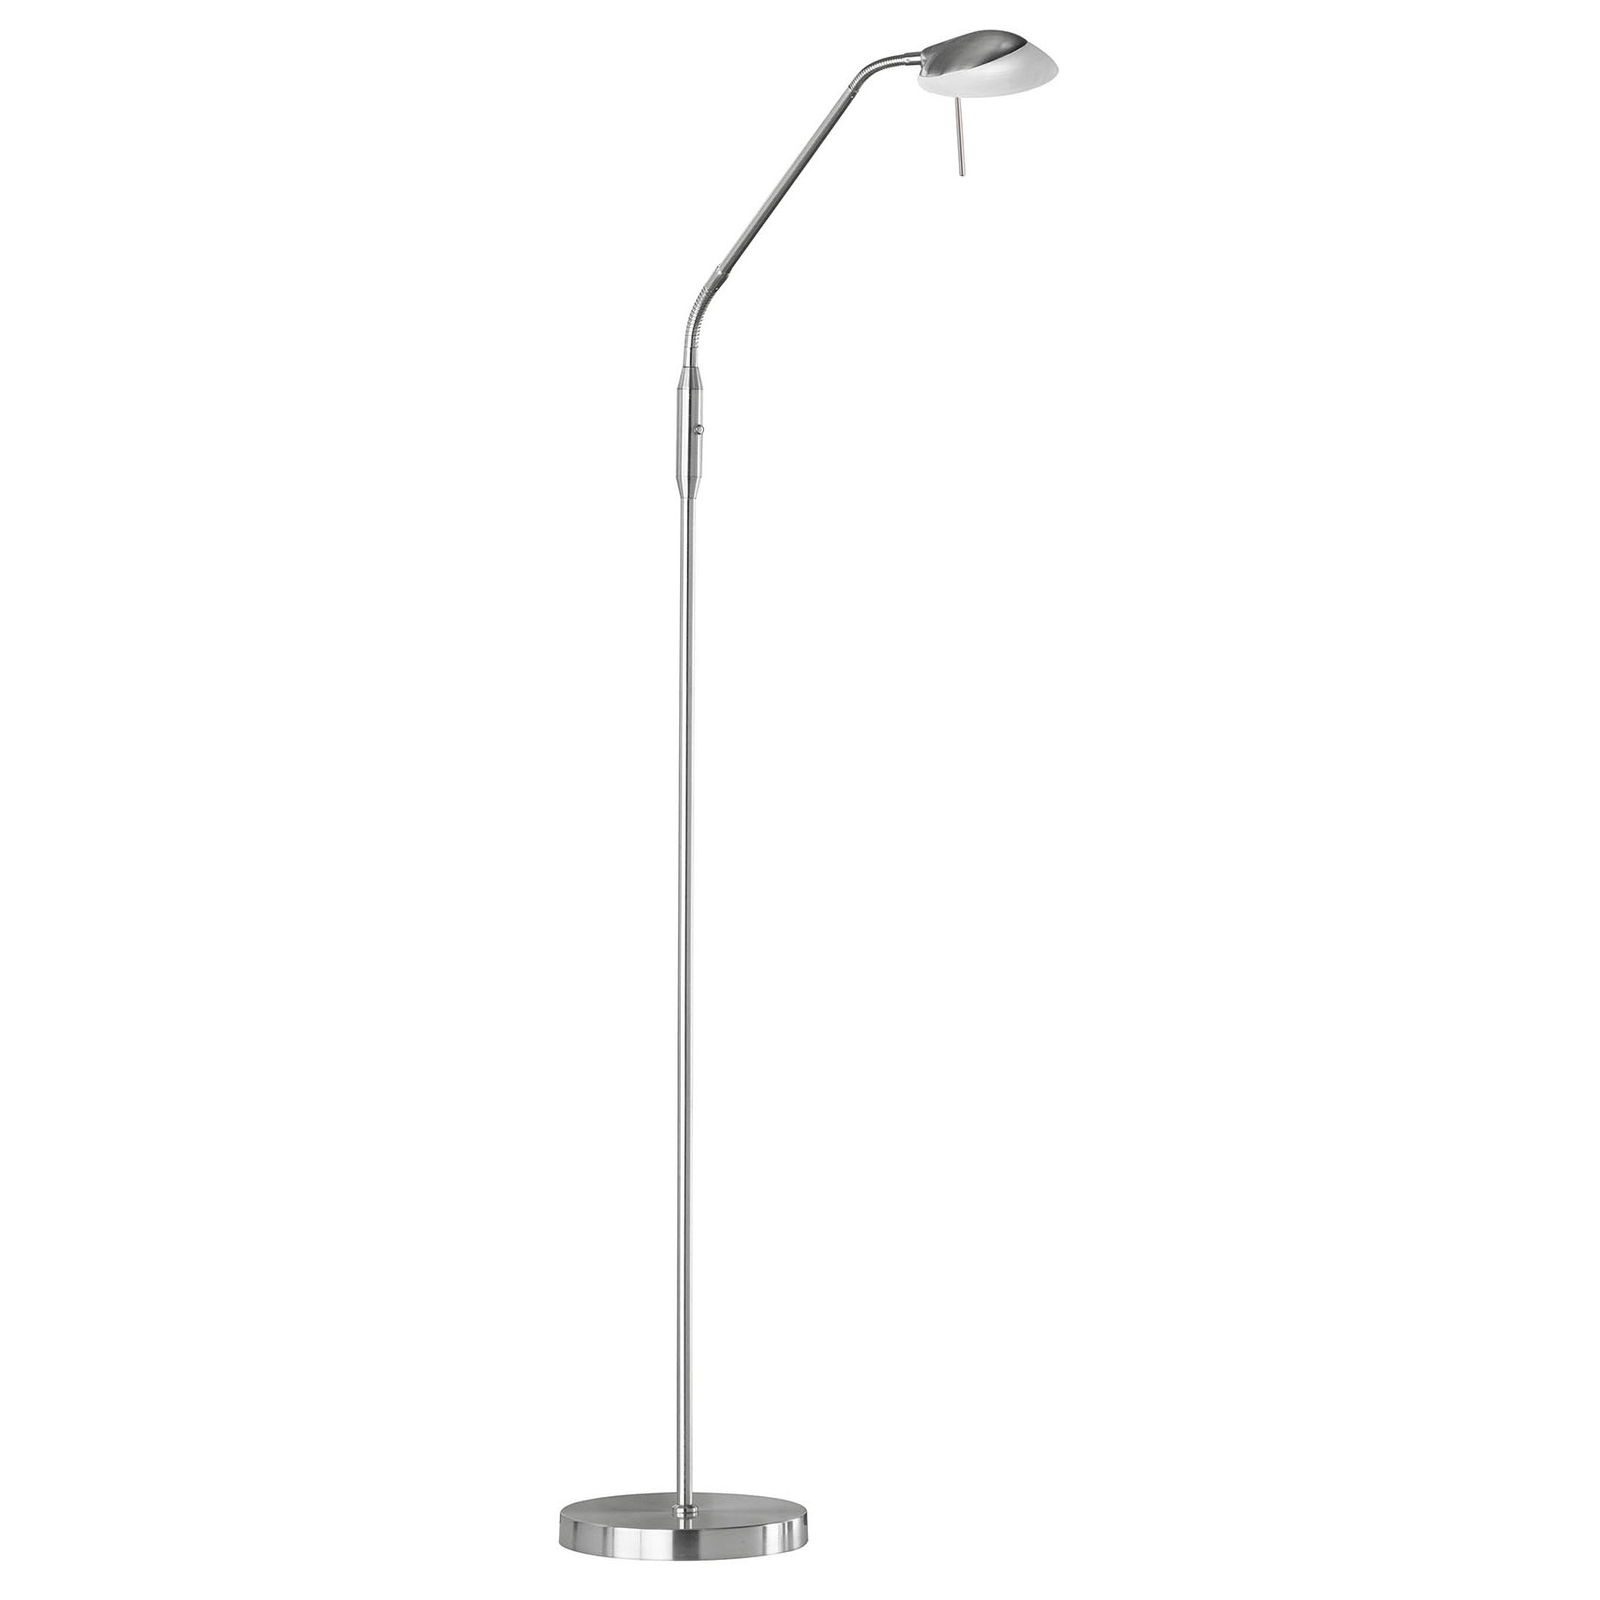 LED-Stehleuchte Pool TW, einflammig, nickel